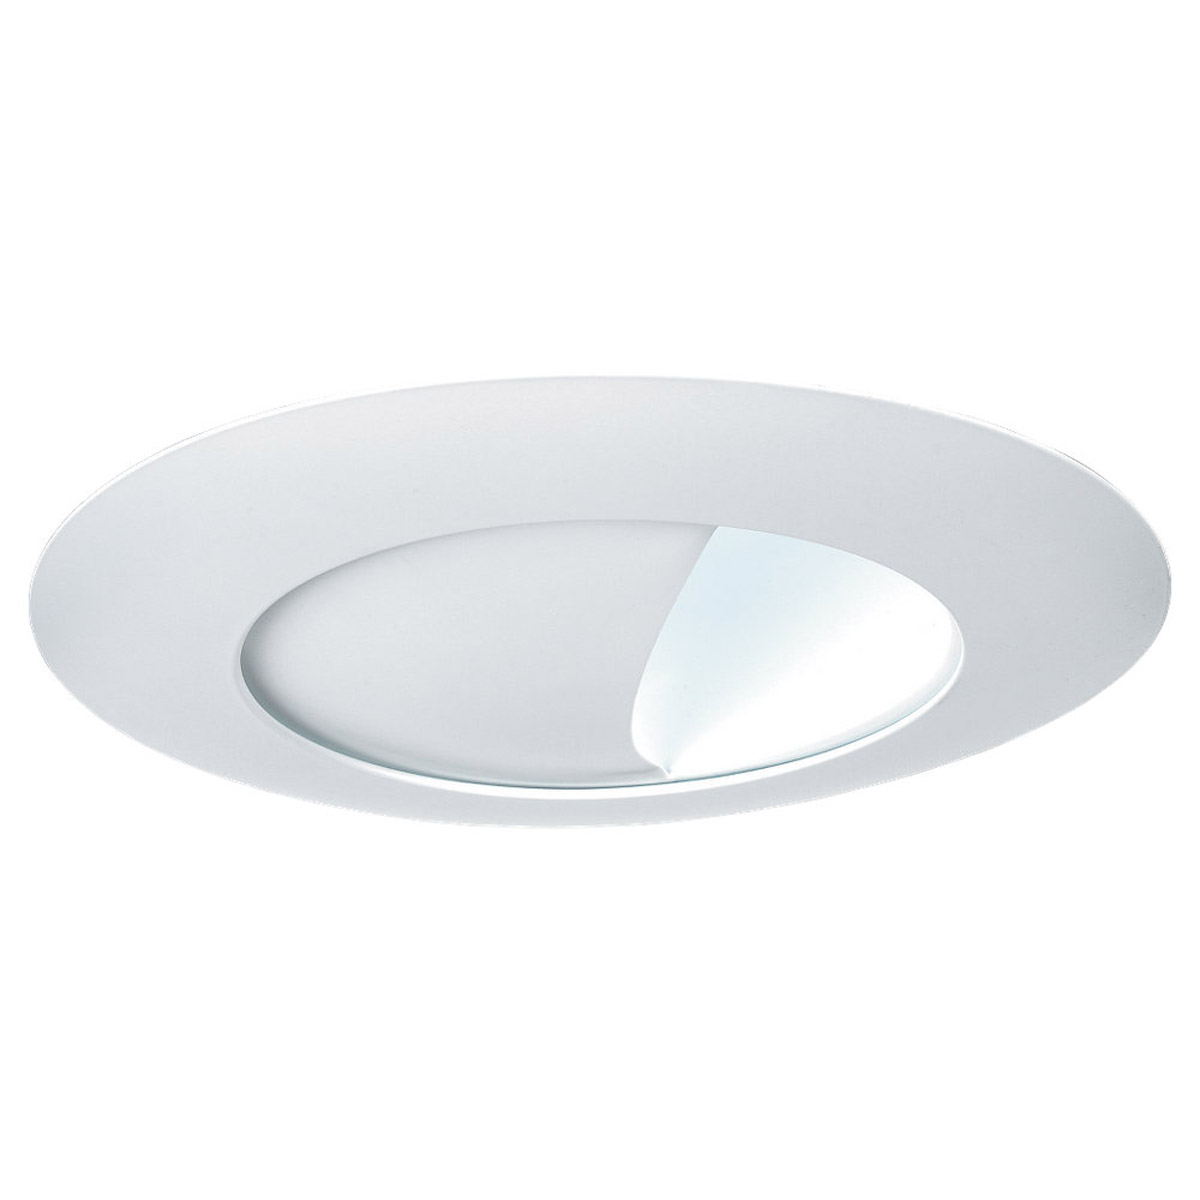 Sea Gull Lighting Signature Recessed Trim Only in White 11139AT-15